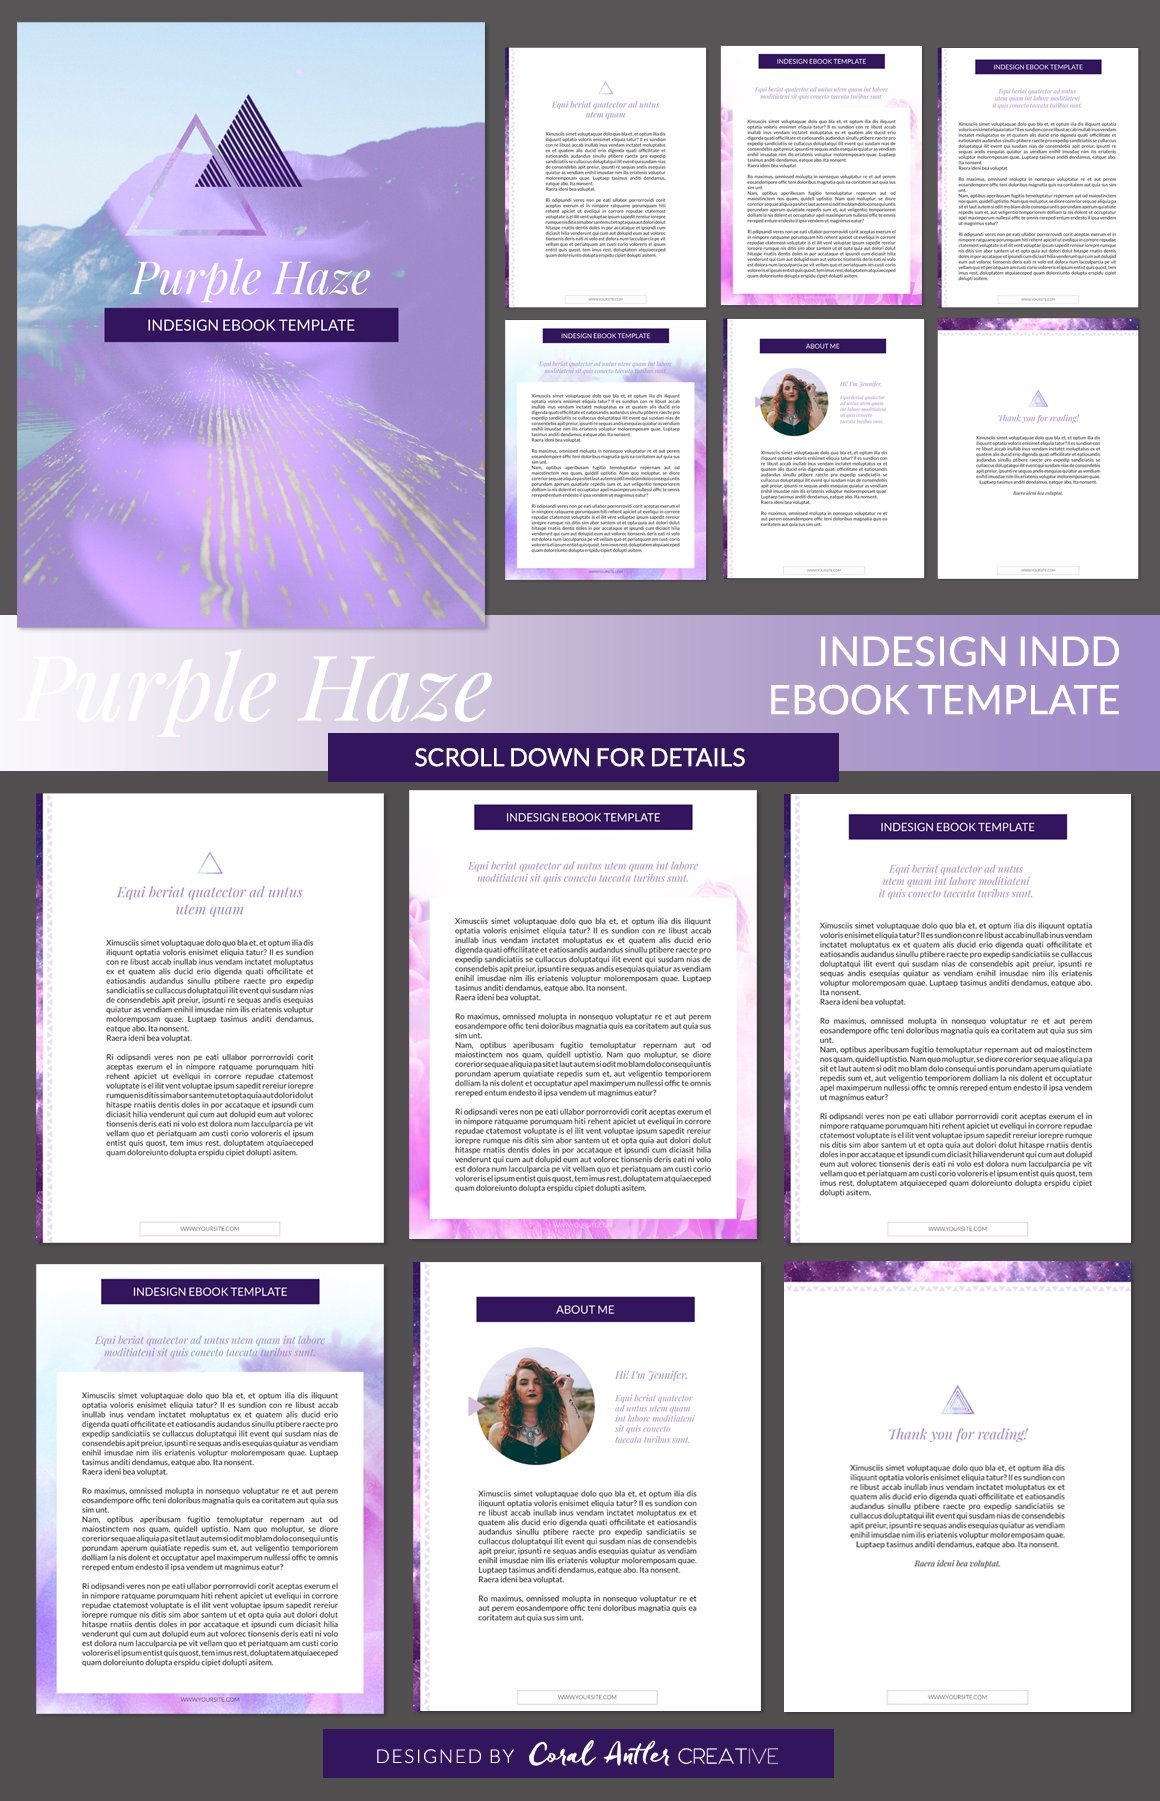 indesign templates for books - purple haze indesign ebook template presentation